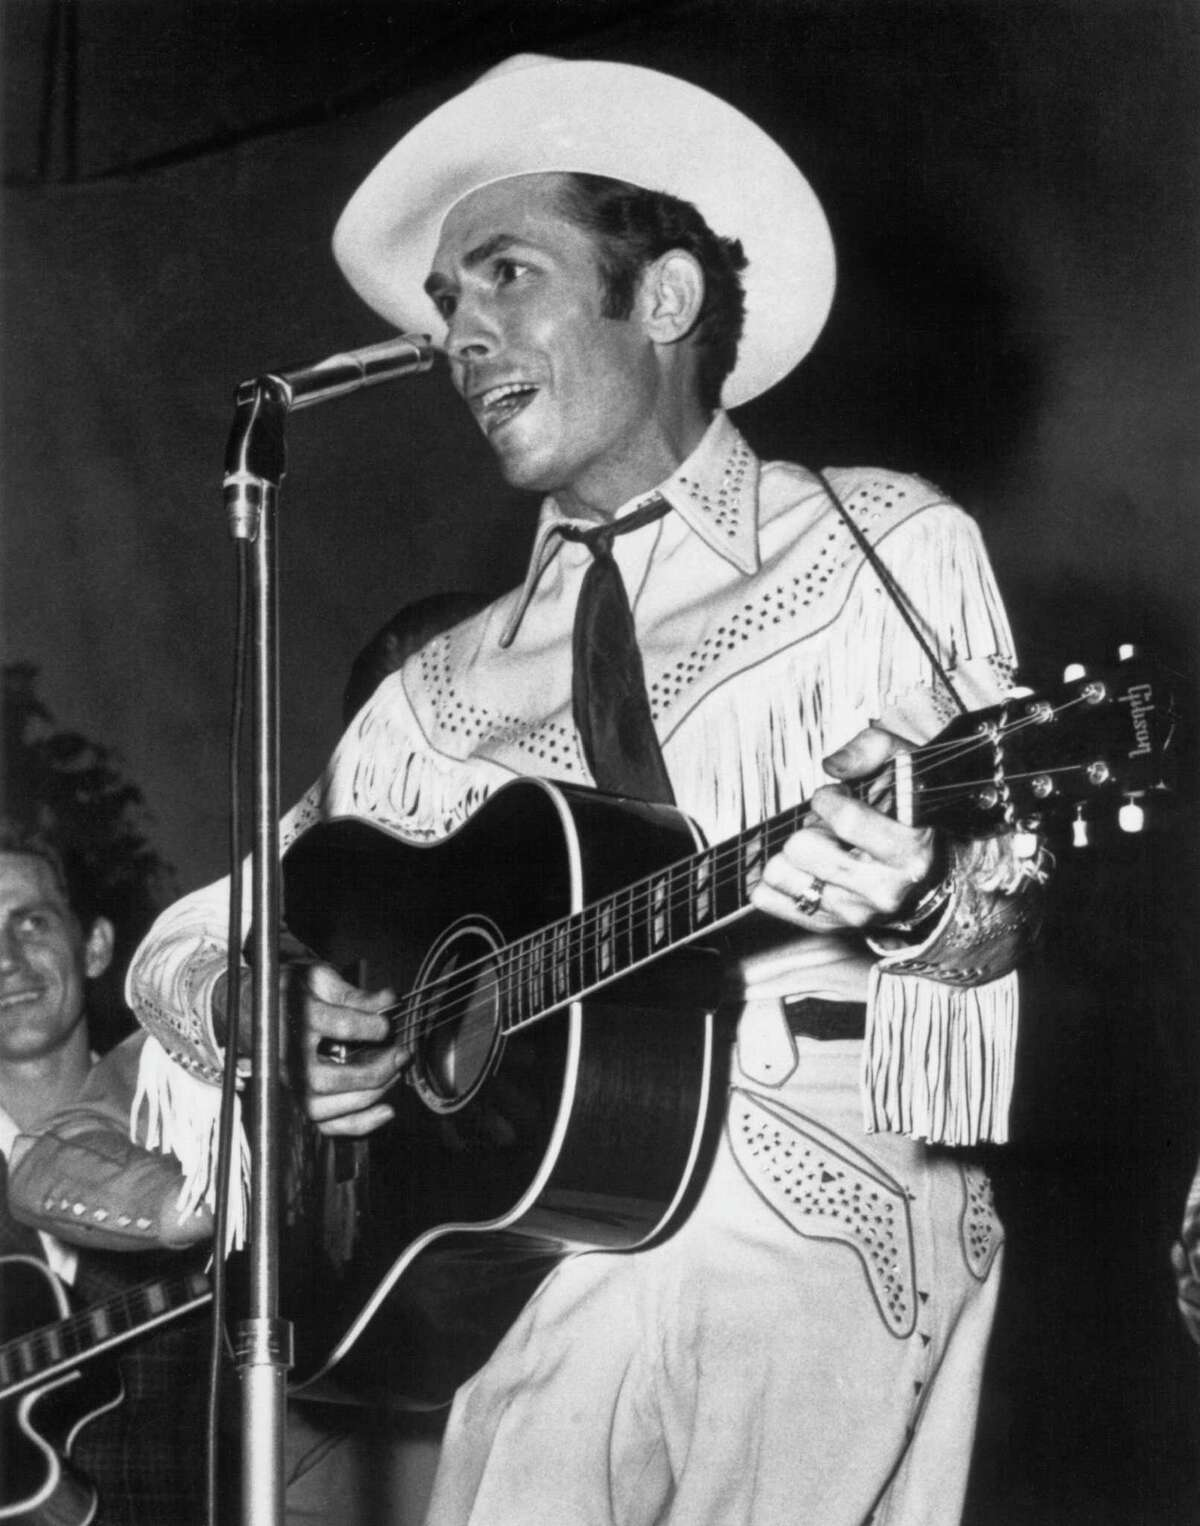 Hank Williams in September 1951 playing in Columbus, Ohio.